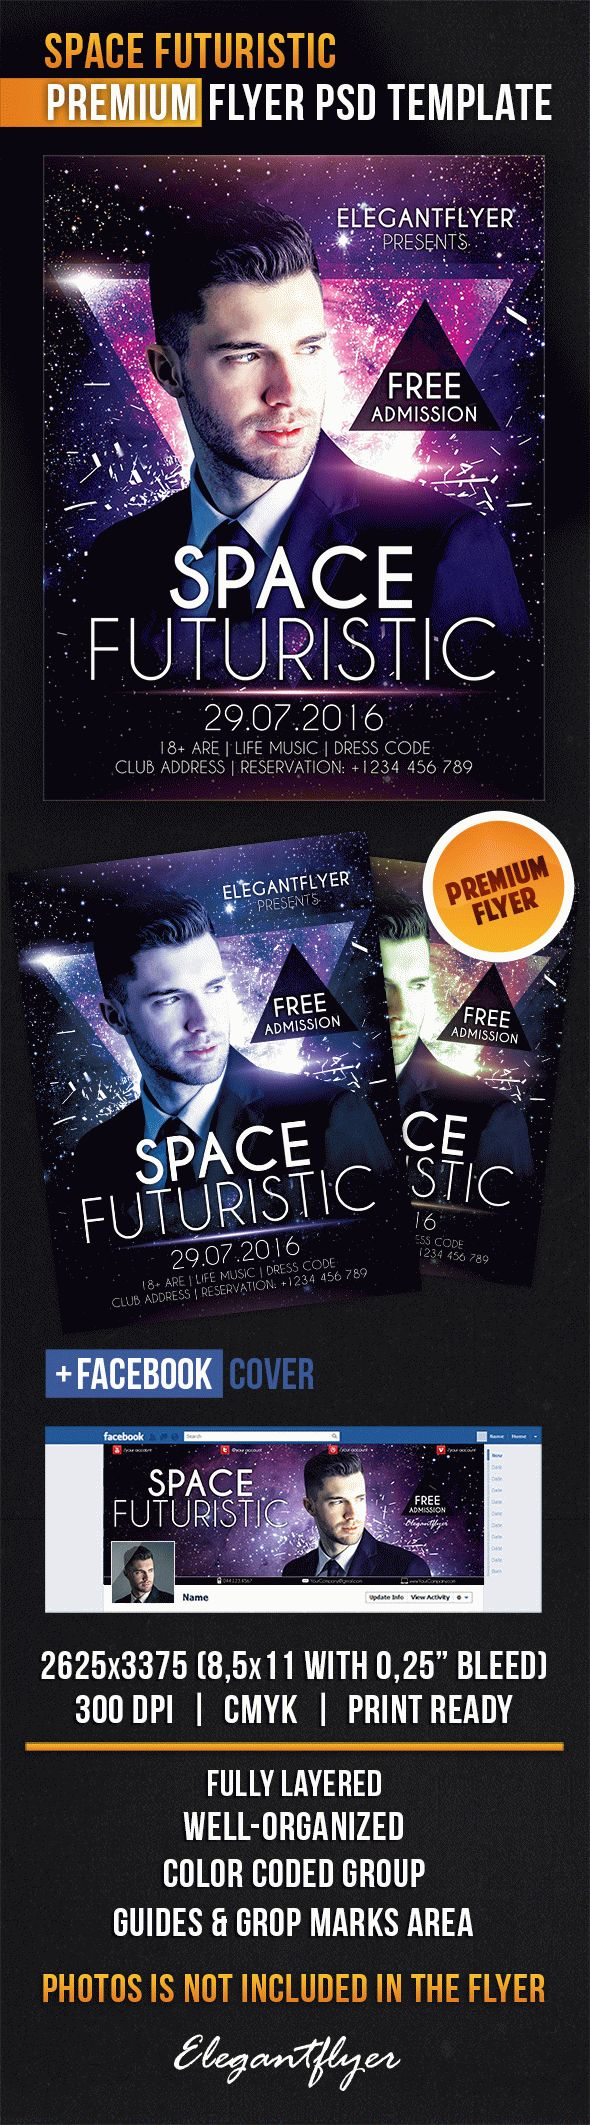 Flyer Template for Space Futuristic